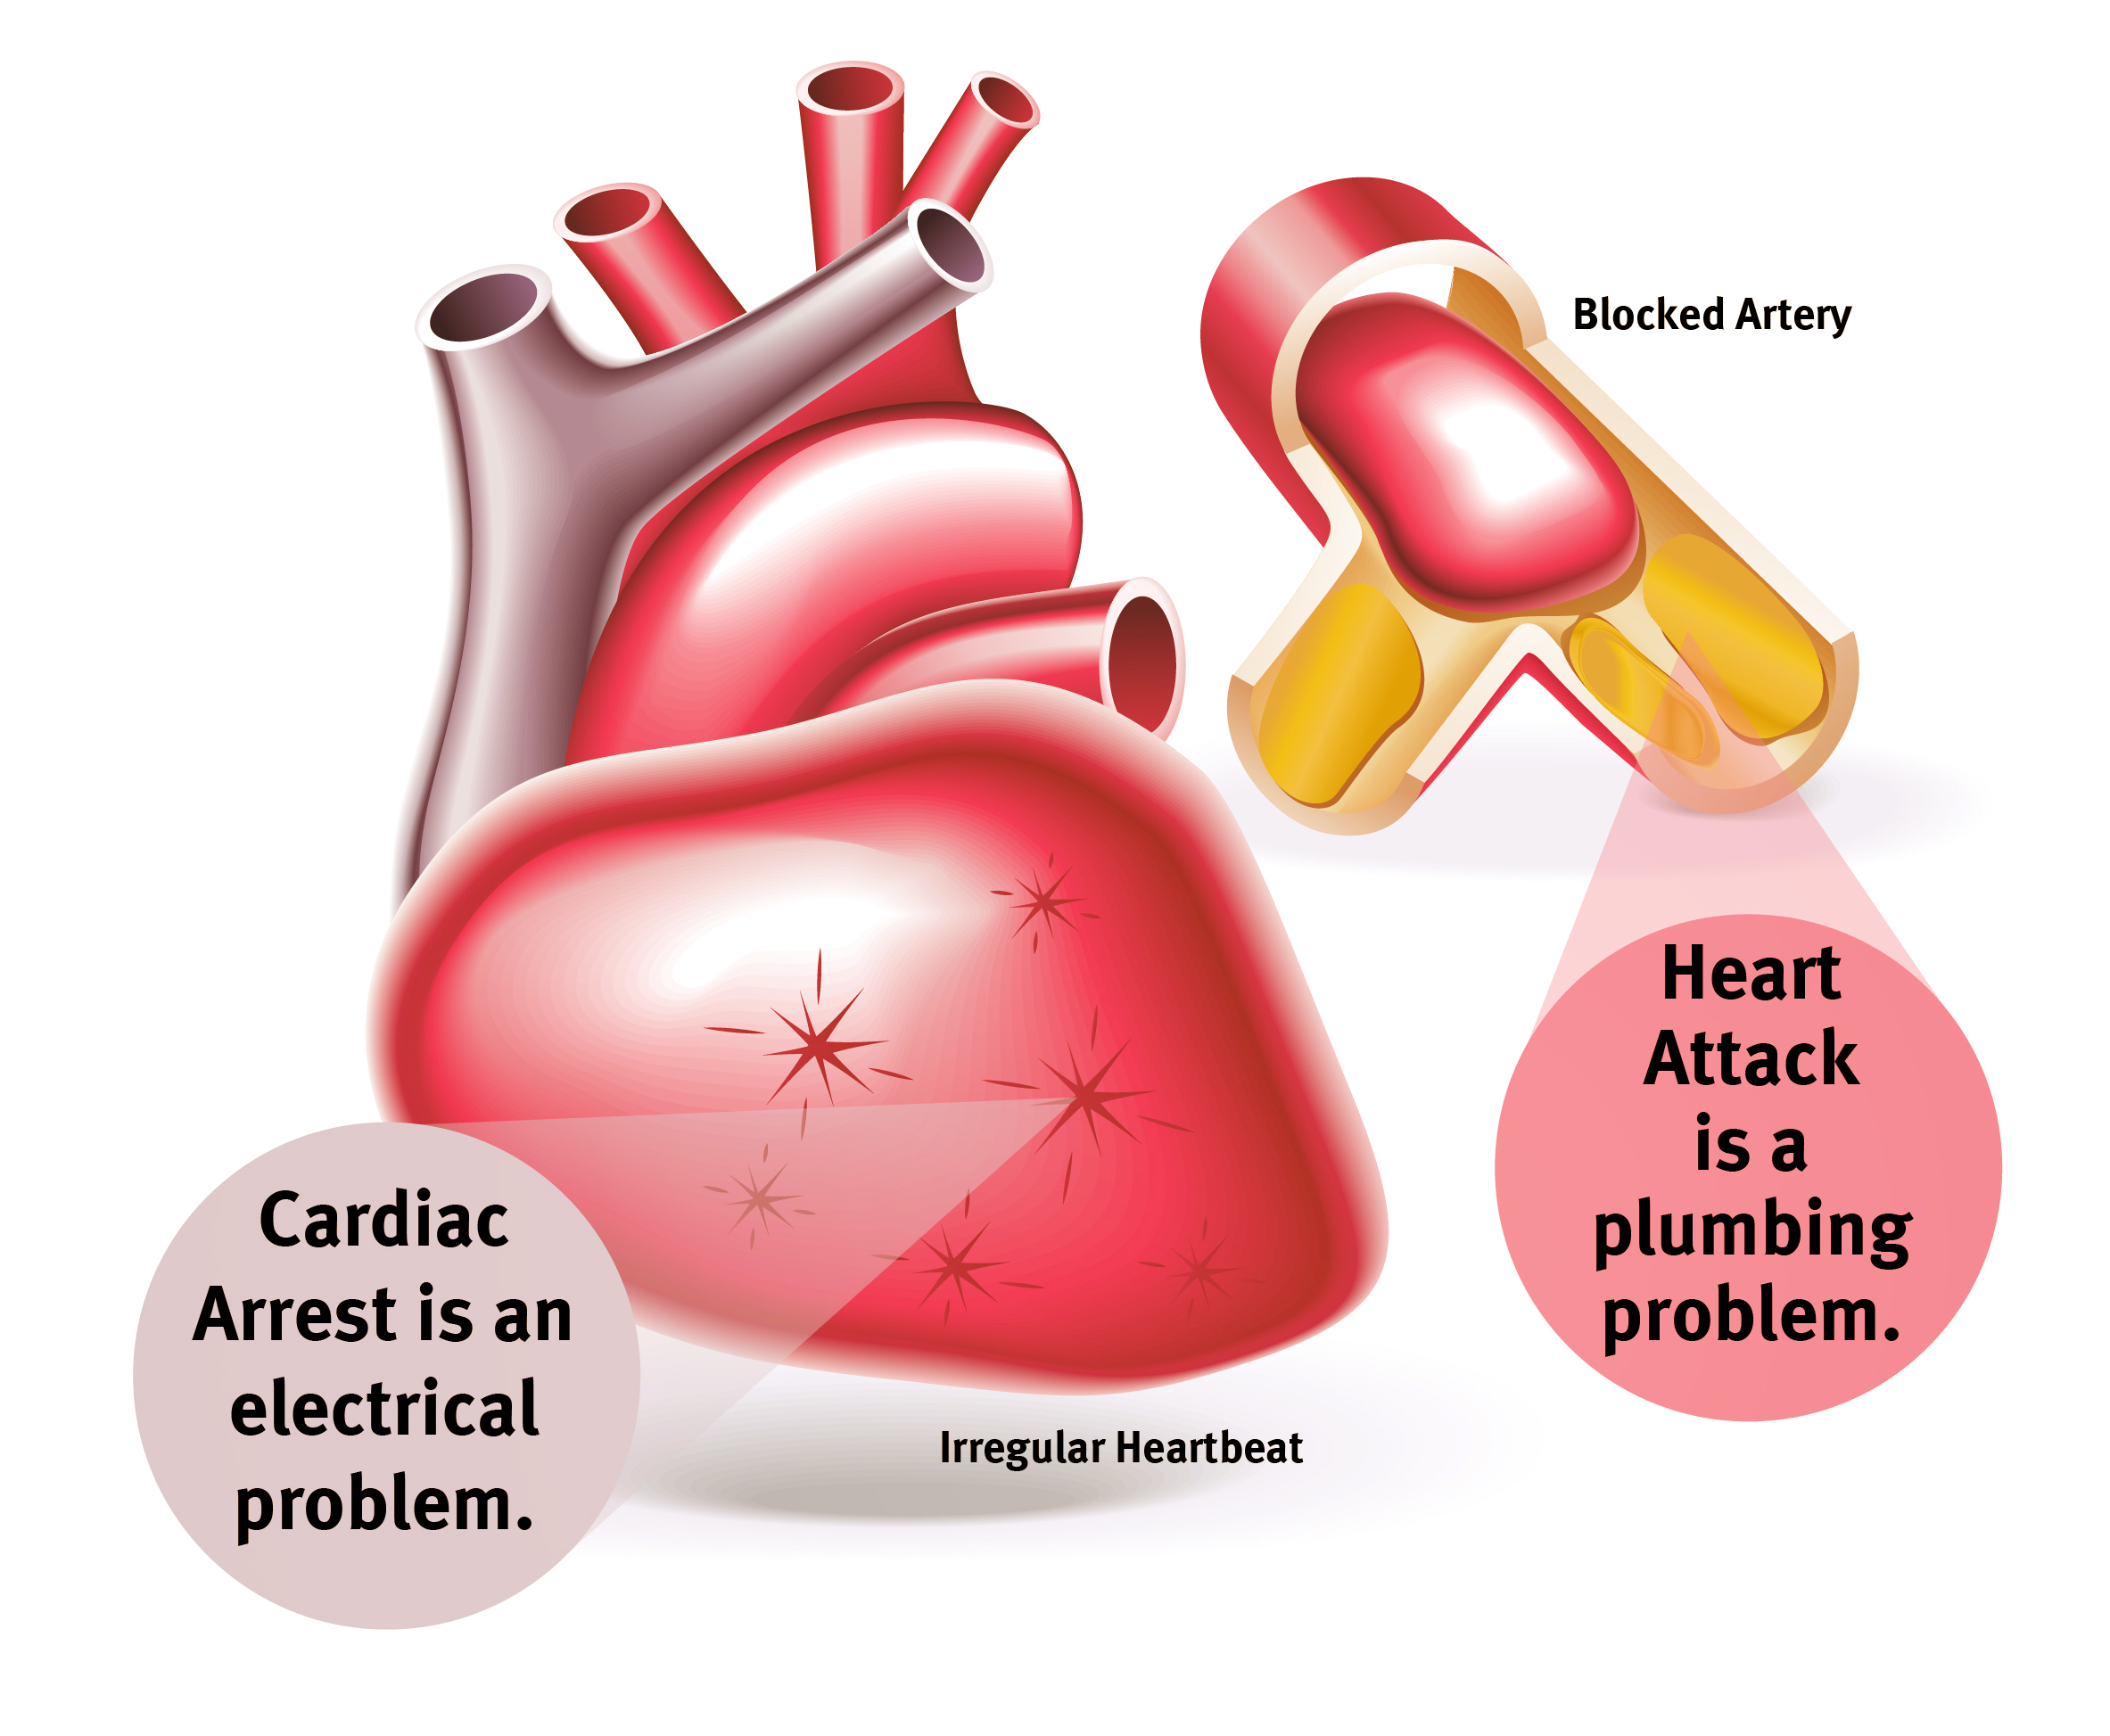 Heart Aattack VS Cardiac Arrest